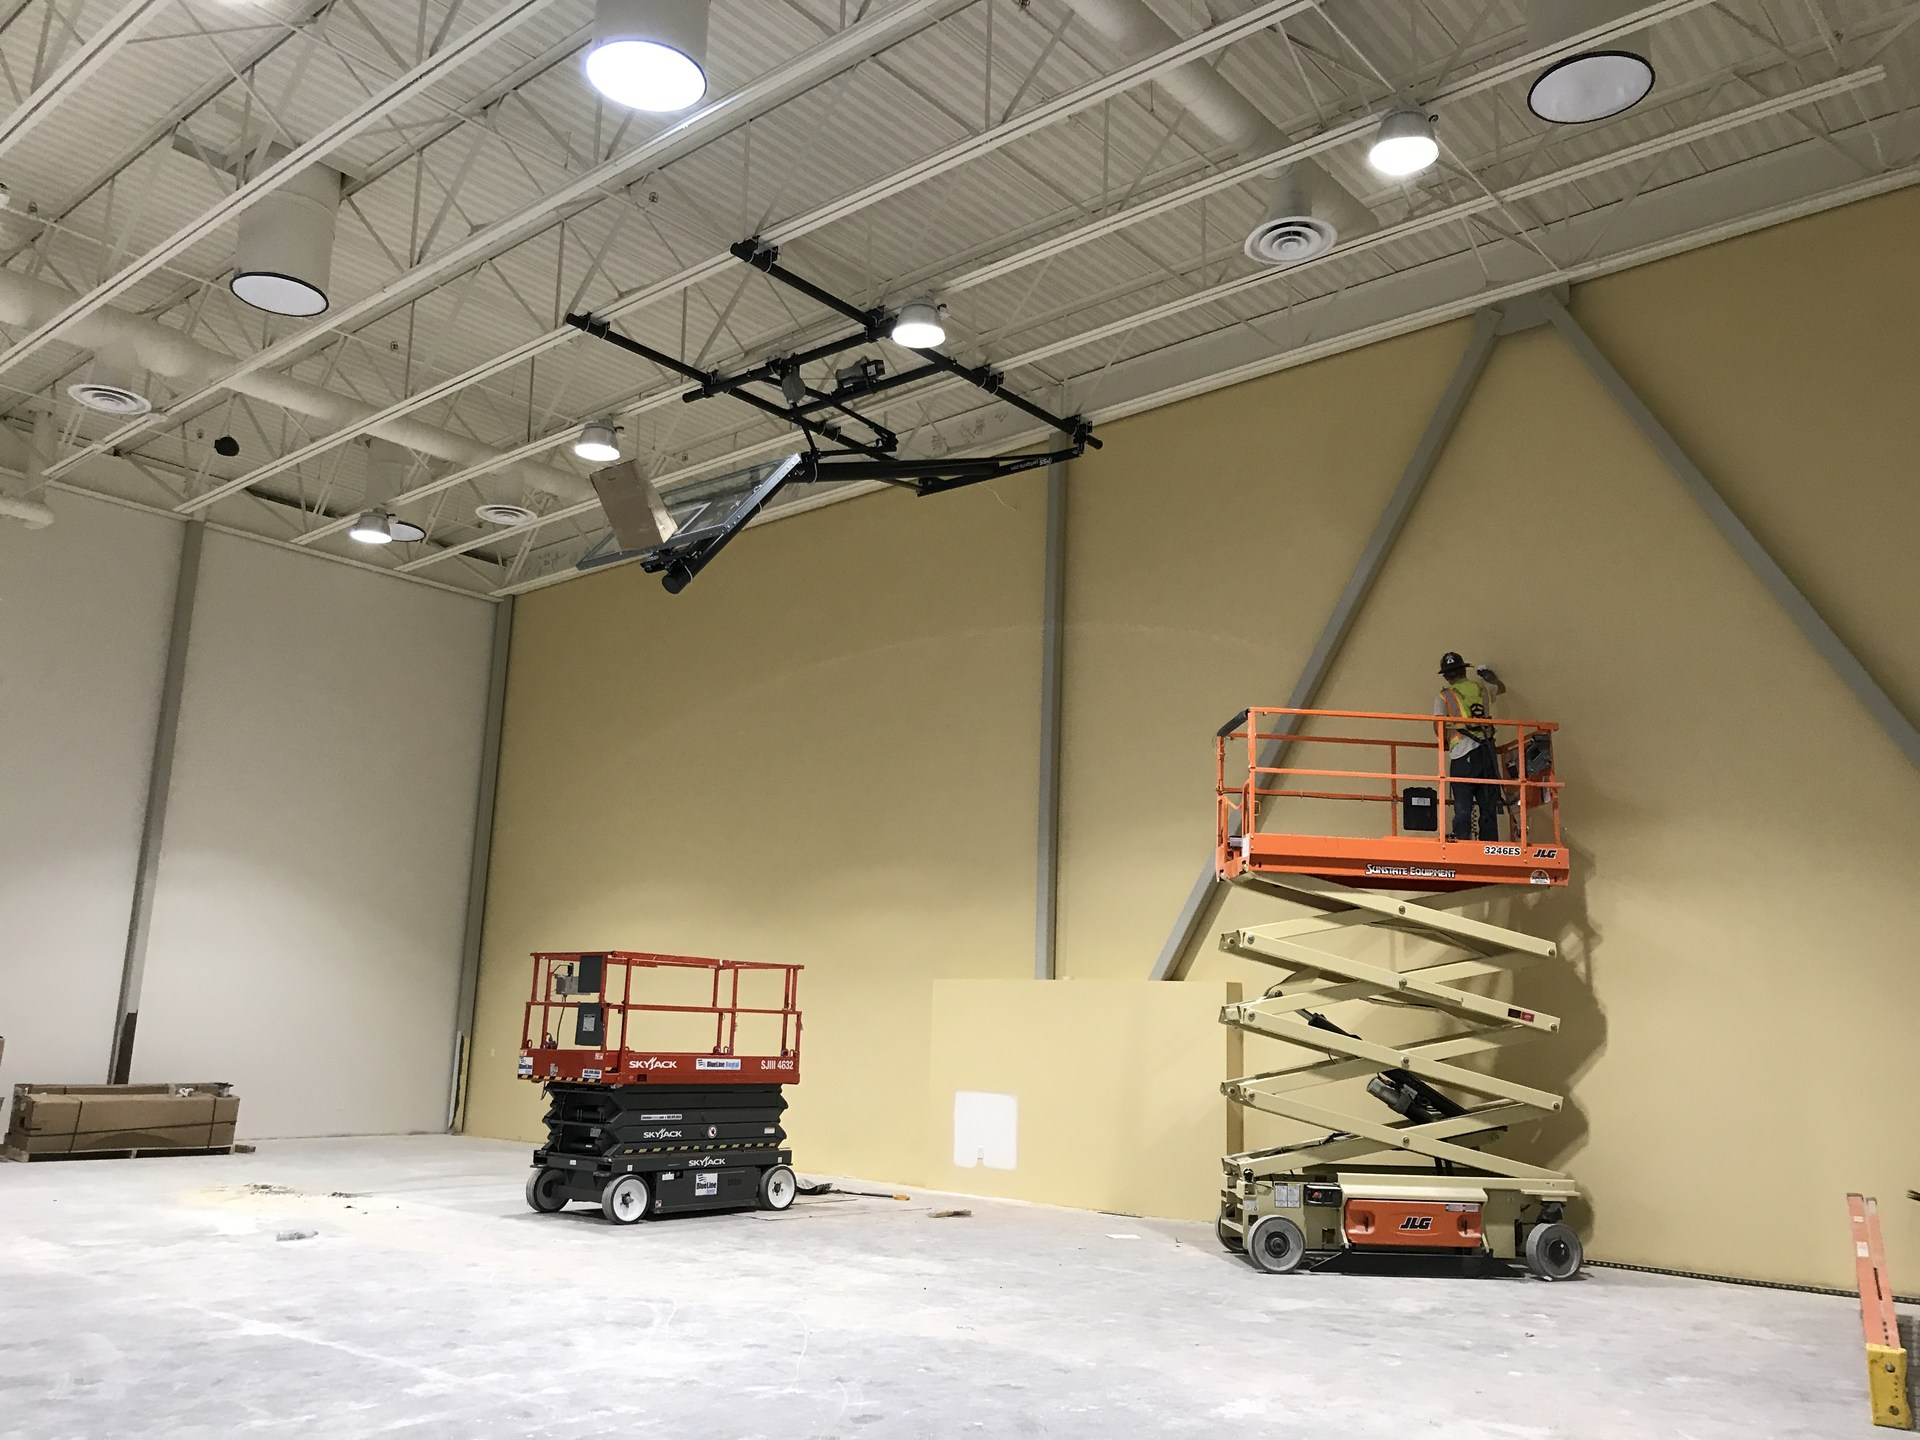 Interior of gym with worker on cherry picker truck and basketball hoop extended